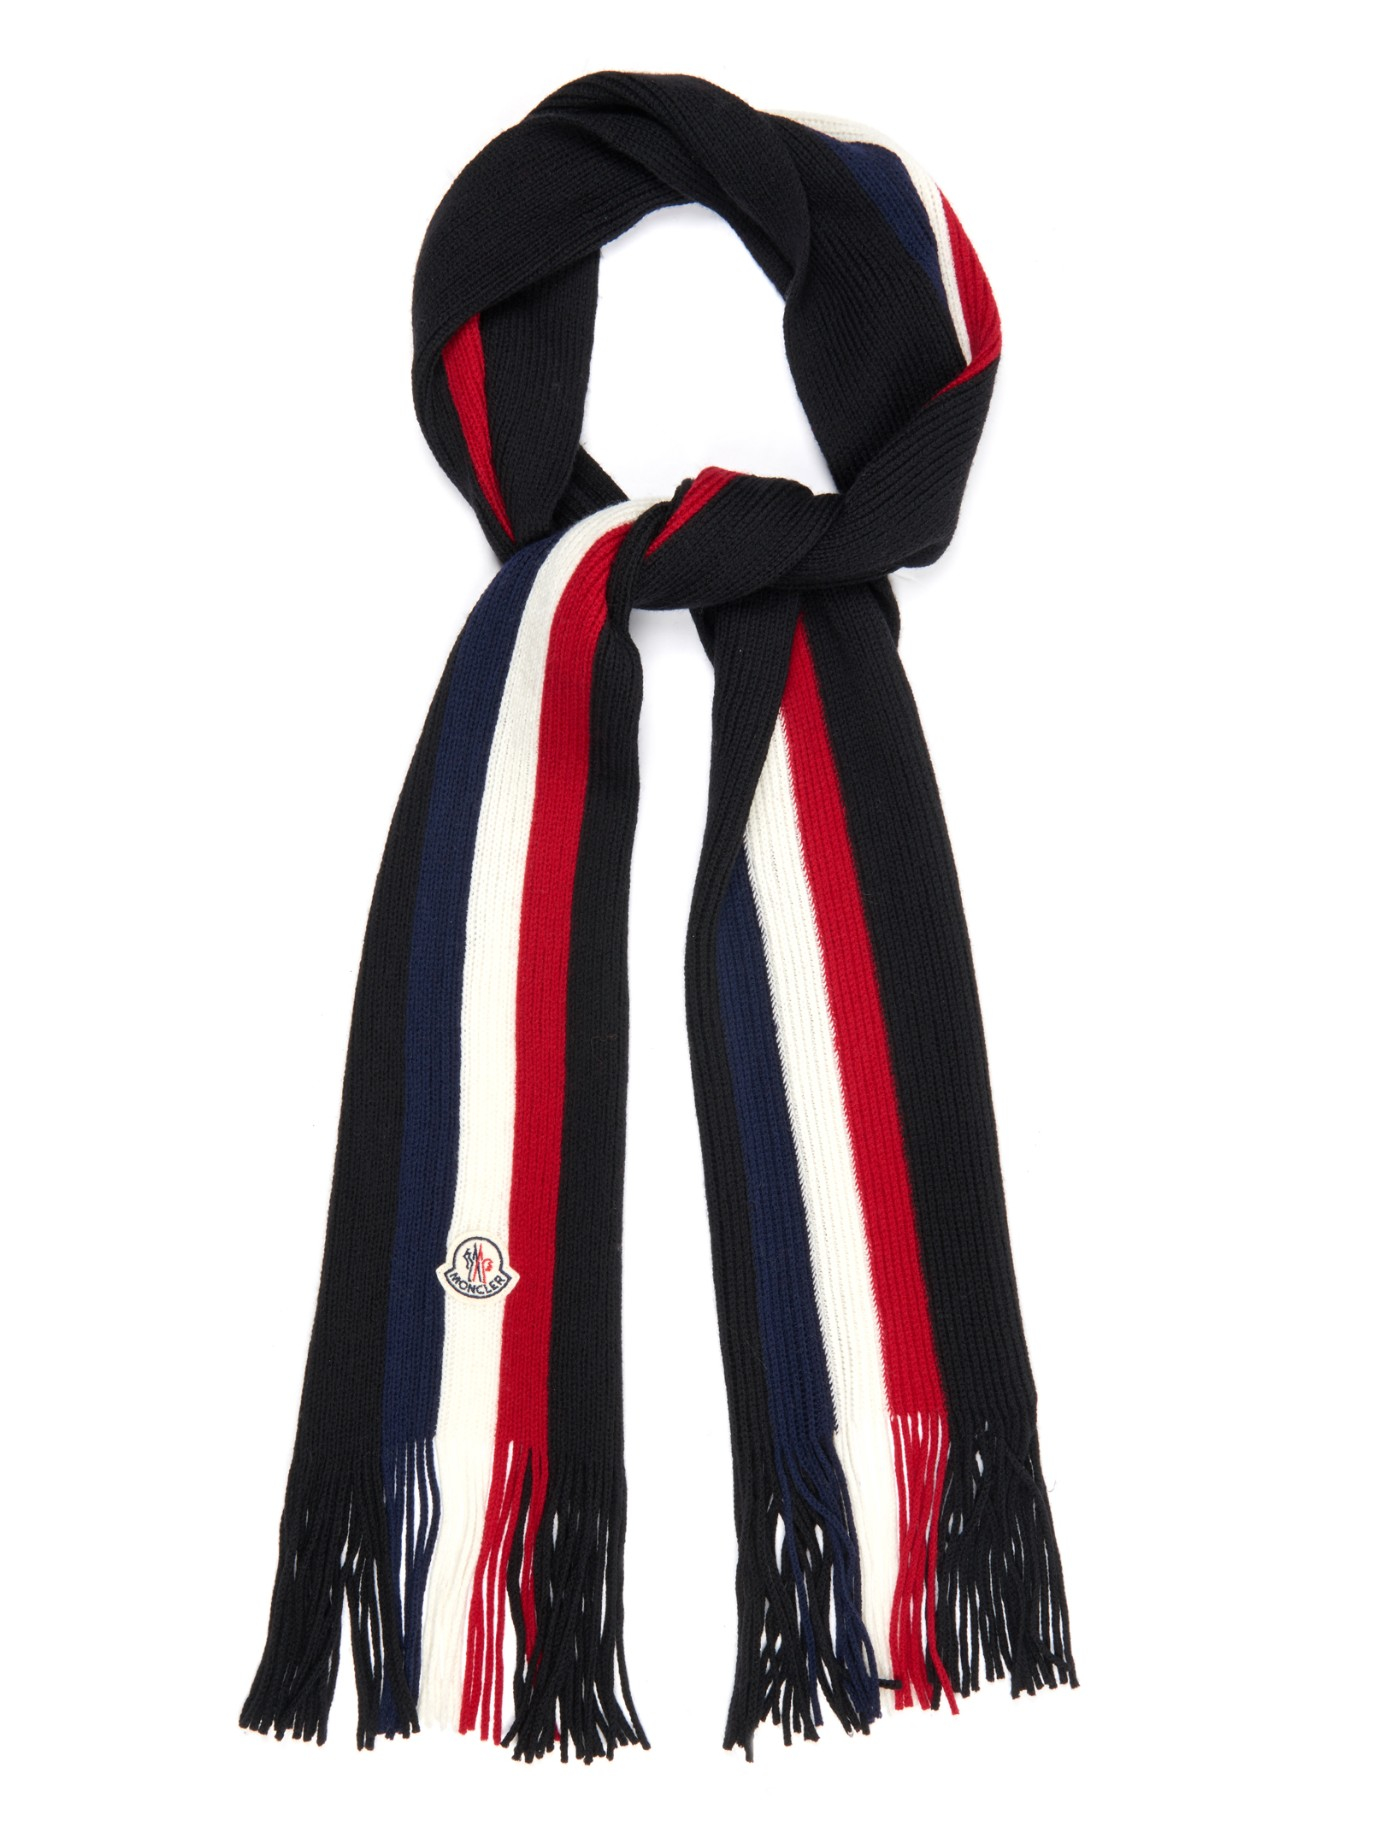 Lyst - Moncler Striped Wool Scarf in Black for Men 2f45a3fa662